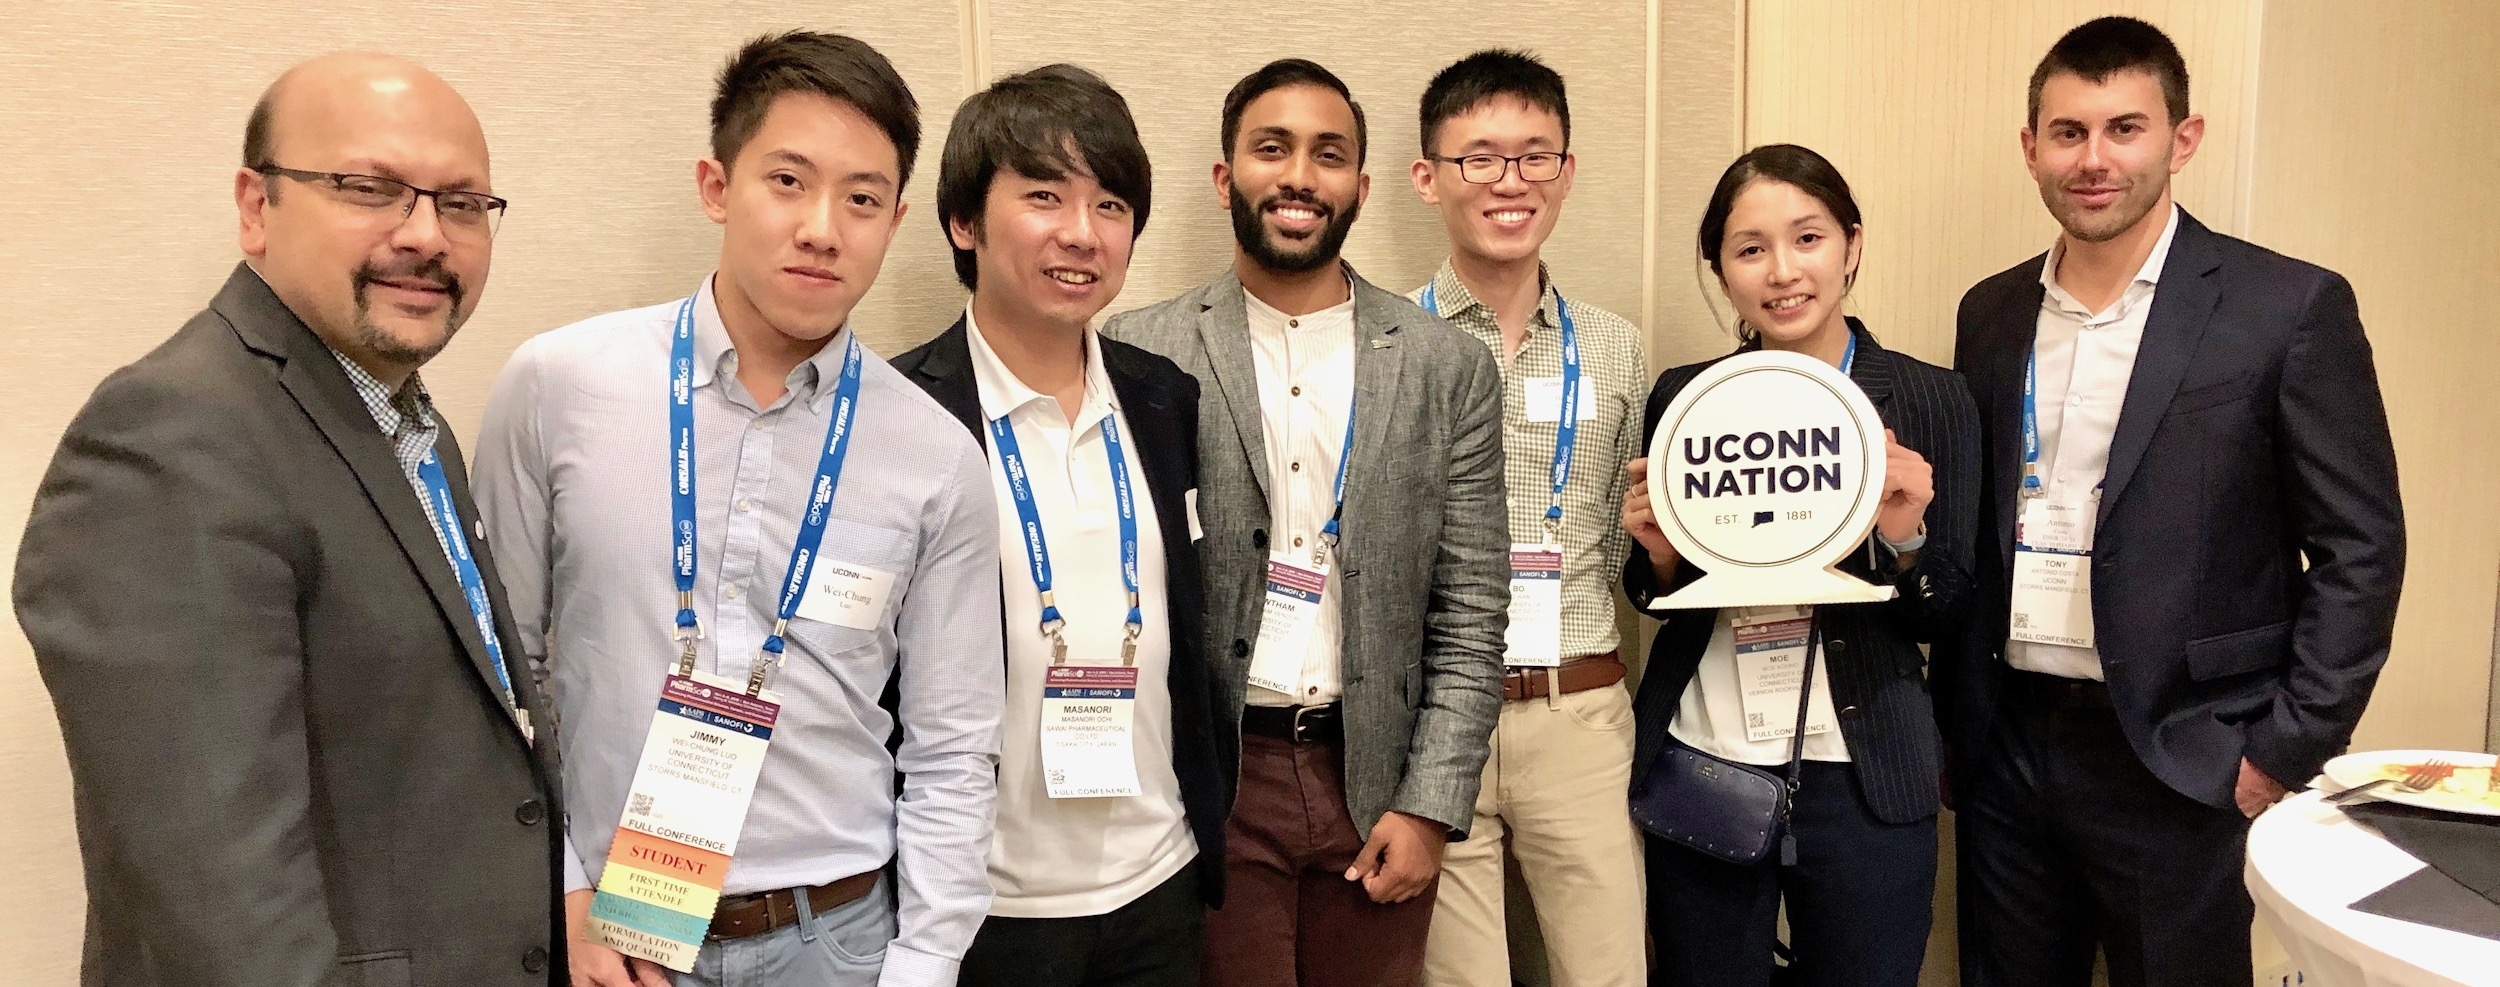 Pharmaceutical Sciences graduate students at AAPS 2019 conference